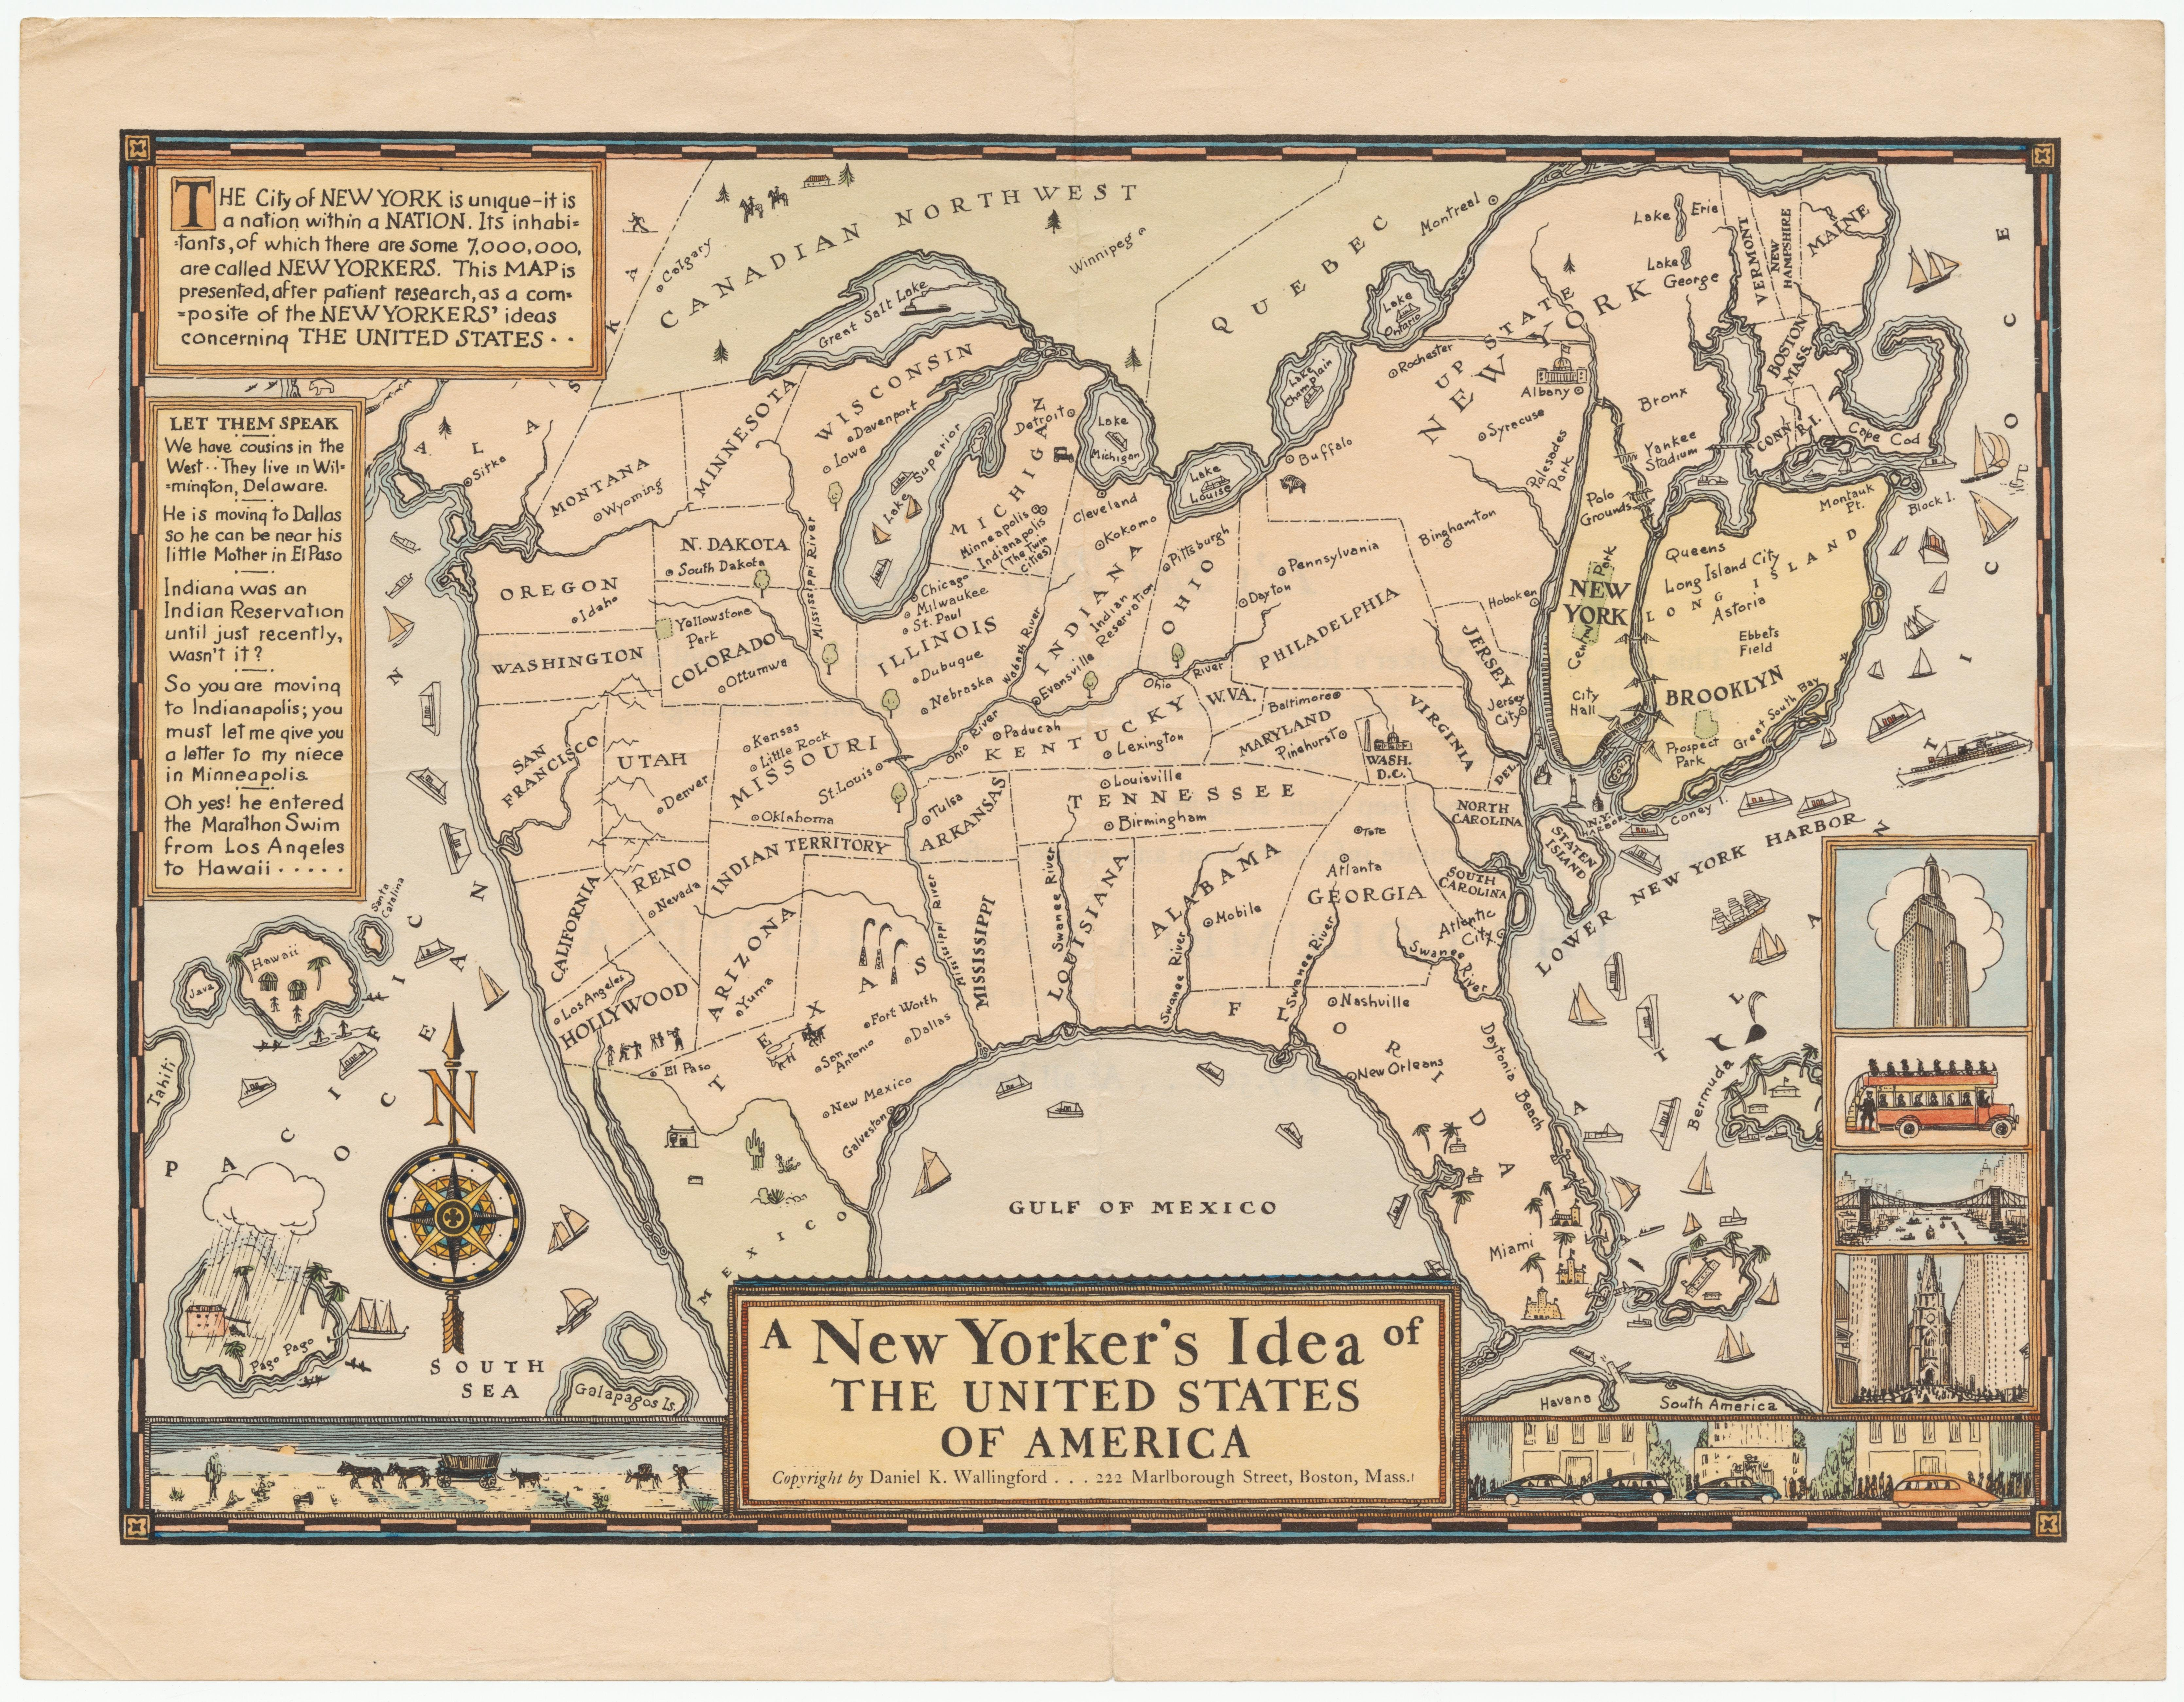 New Yorker's Idea of the United States 1922